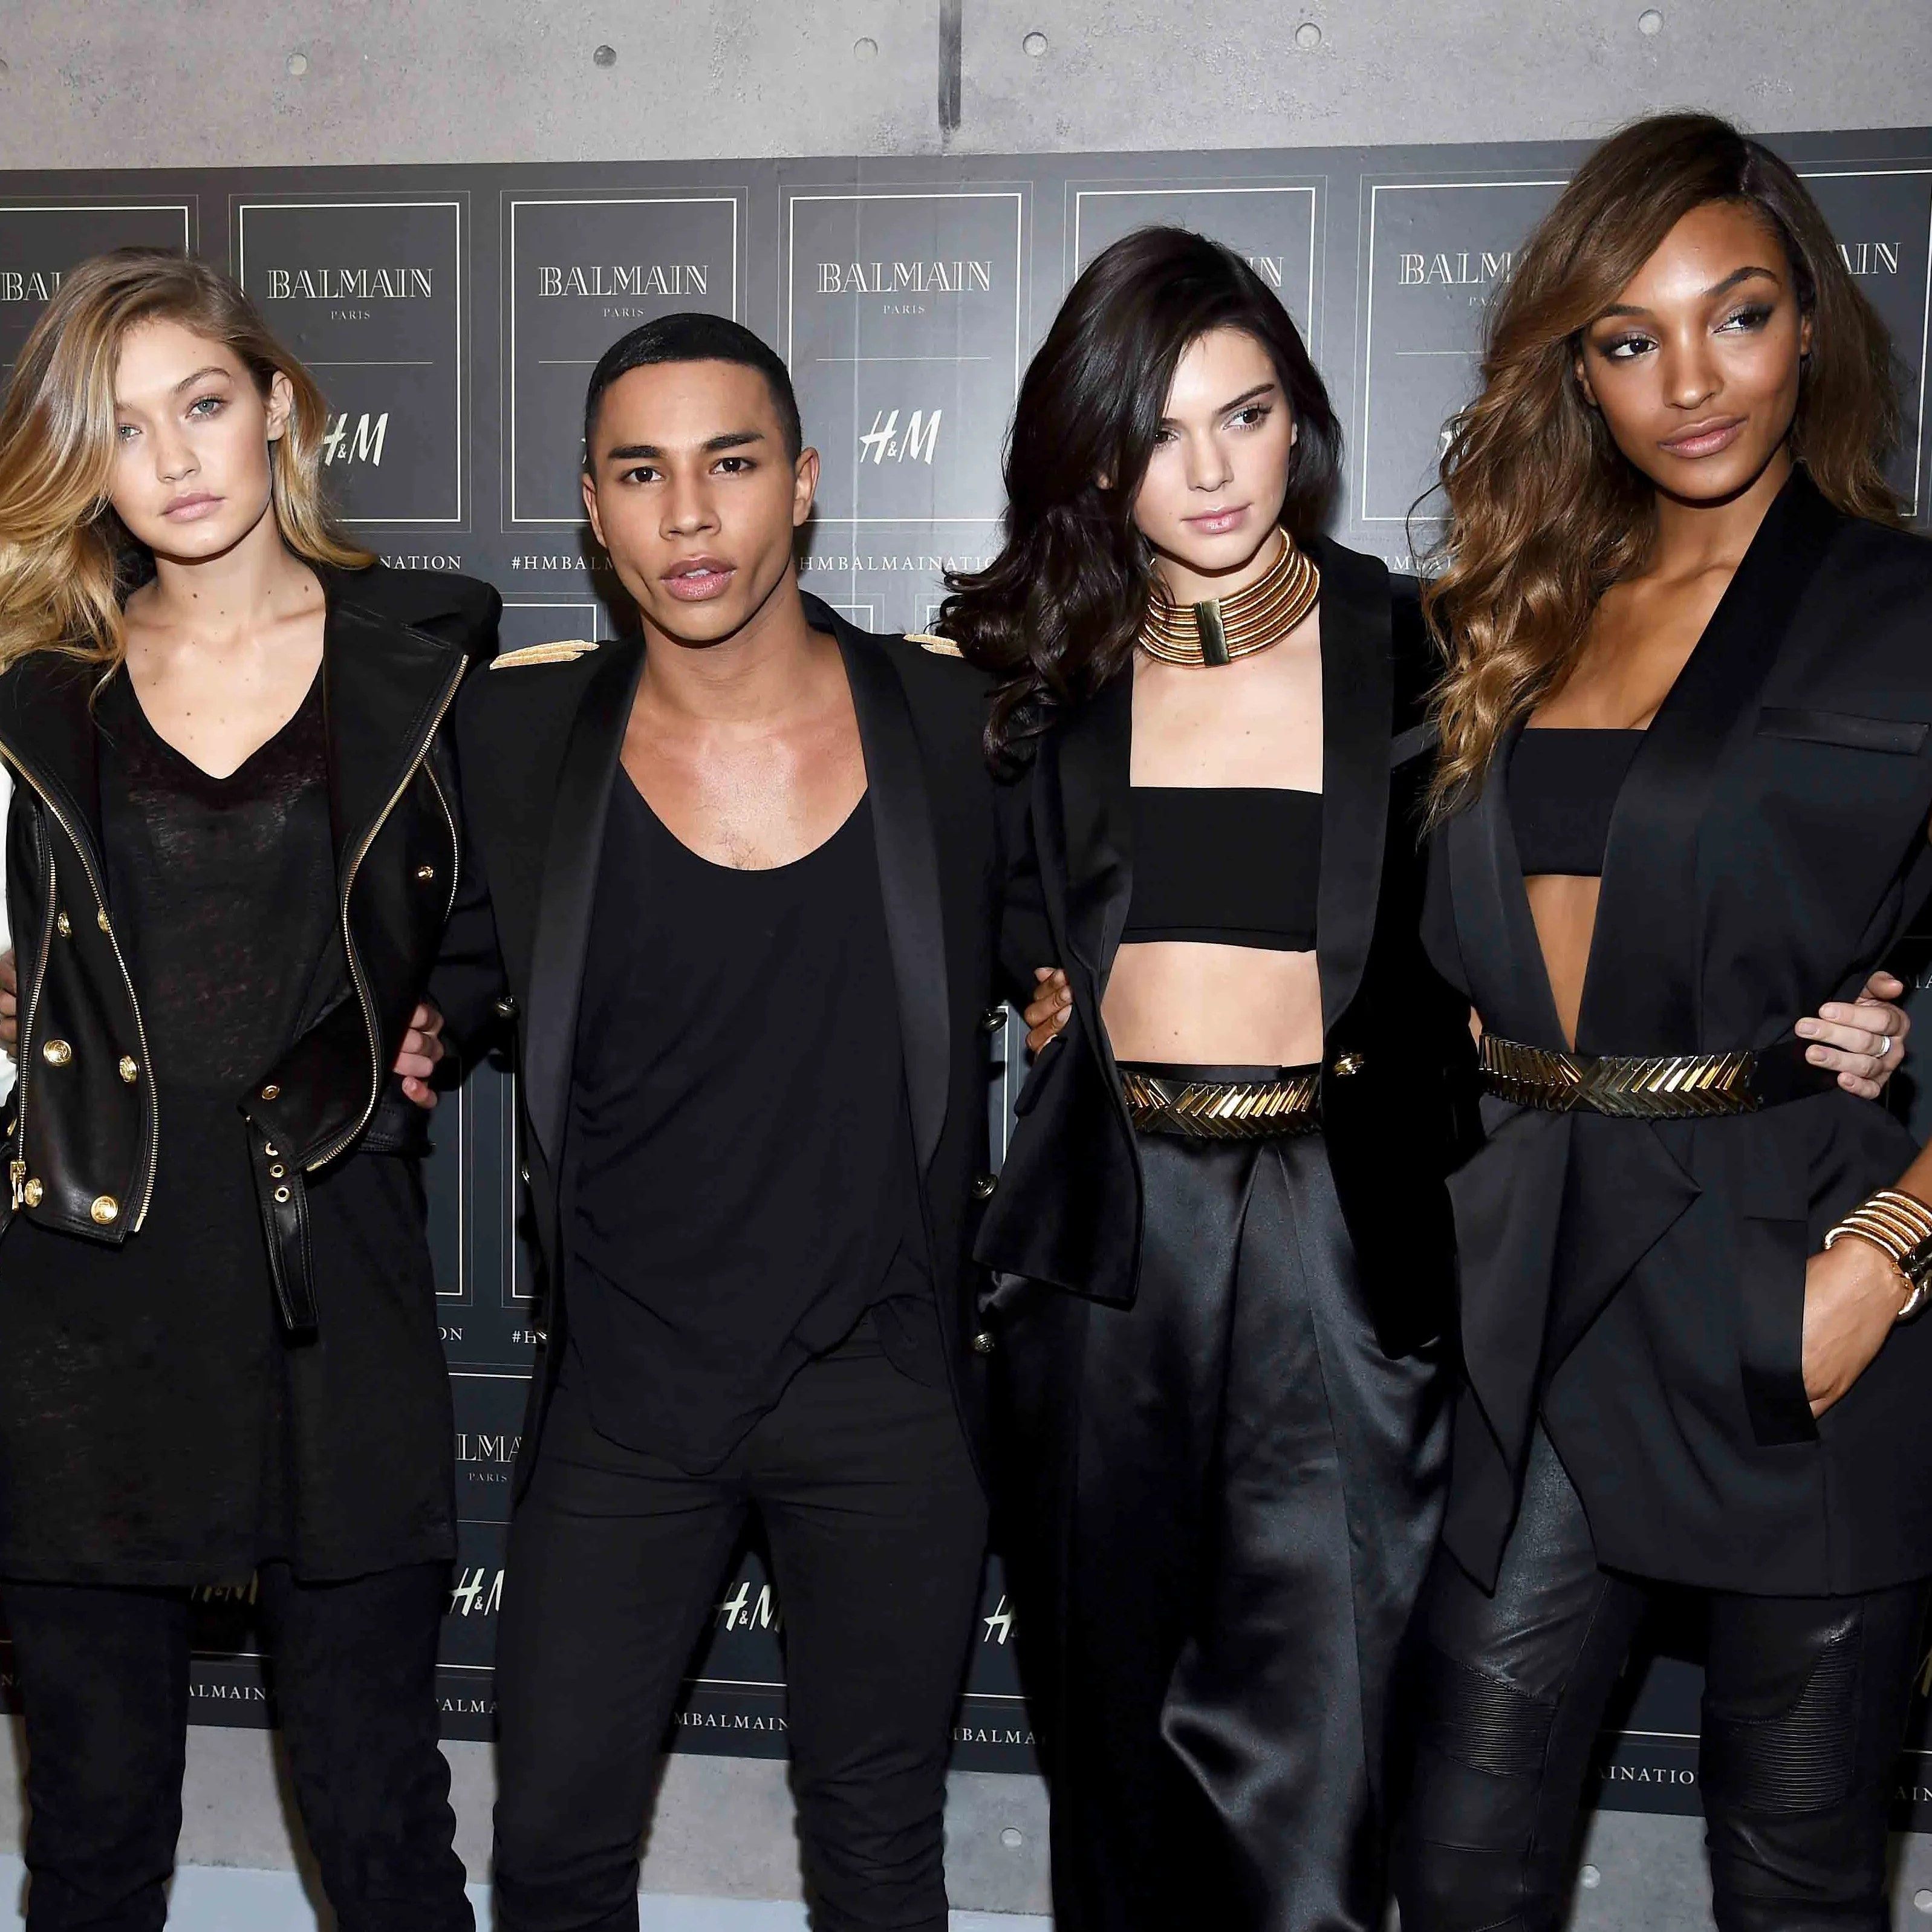 If you have already had olivier rousteing before plastic surgery and want: Olivier Rousteing Before - French Fashion Designer Olivier ...